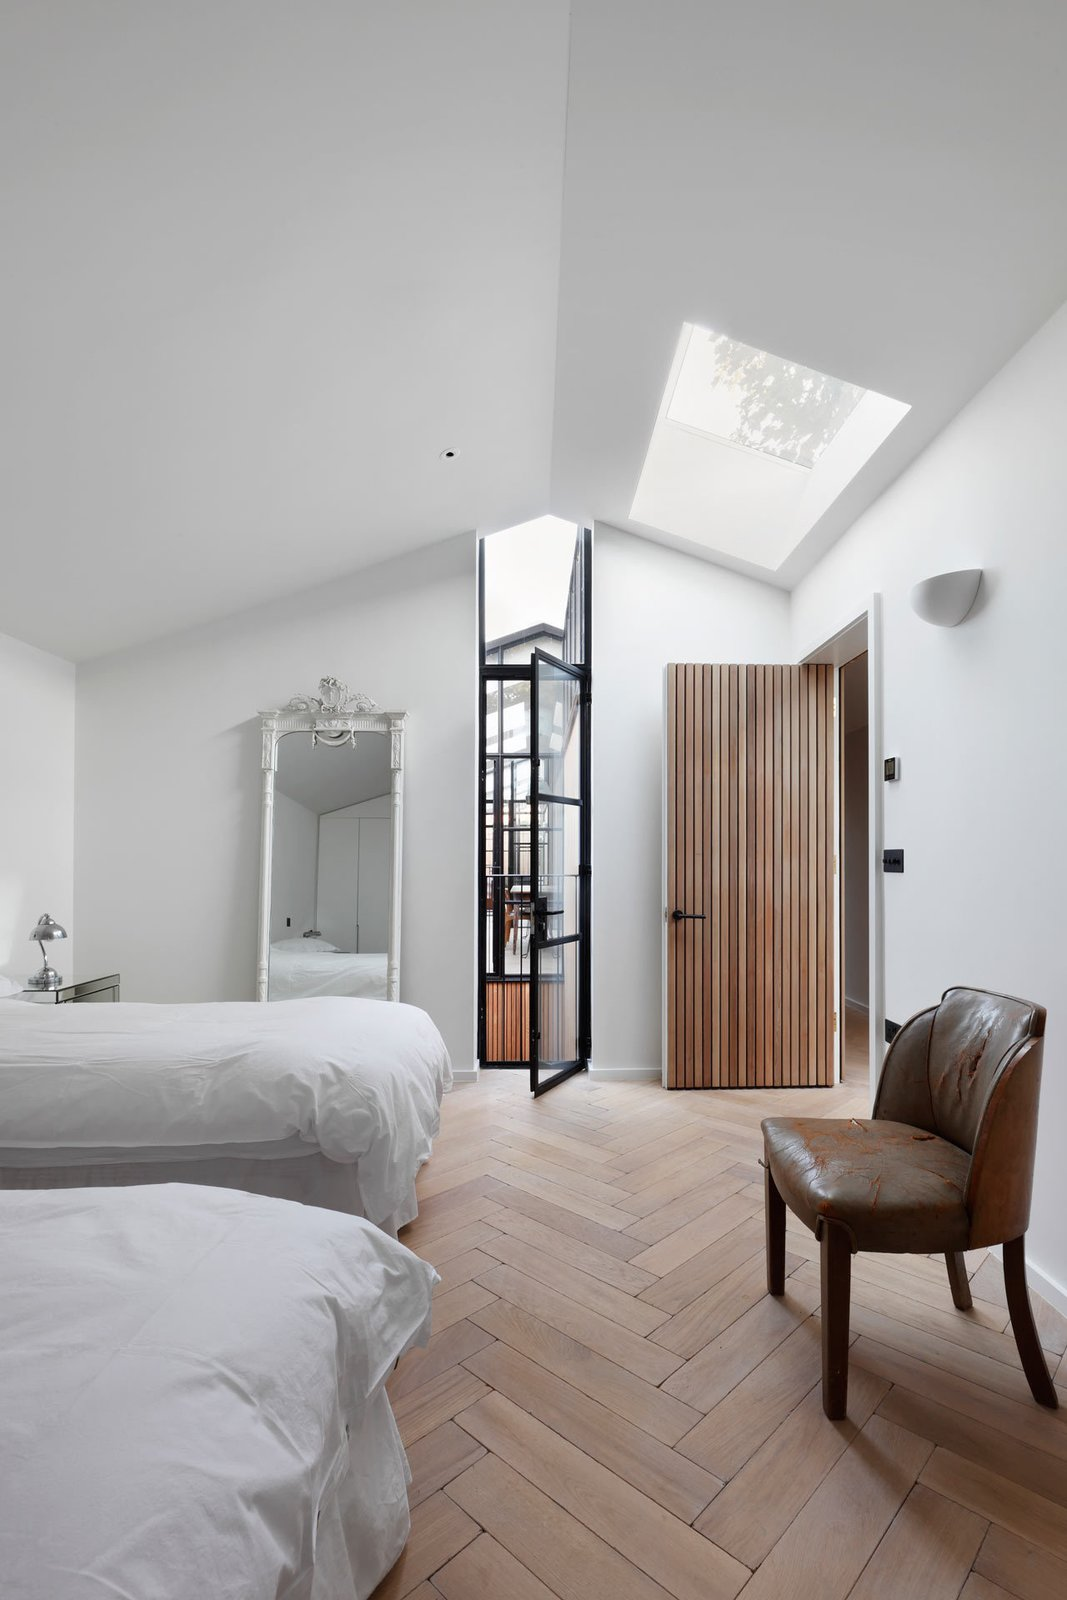 Bedroom, Wall Lighting, Light Hardwood Floor, Recessed Lighting, Night Stands, Bed, Table Lighting, and Chair  Best Photos from The Courtyard House